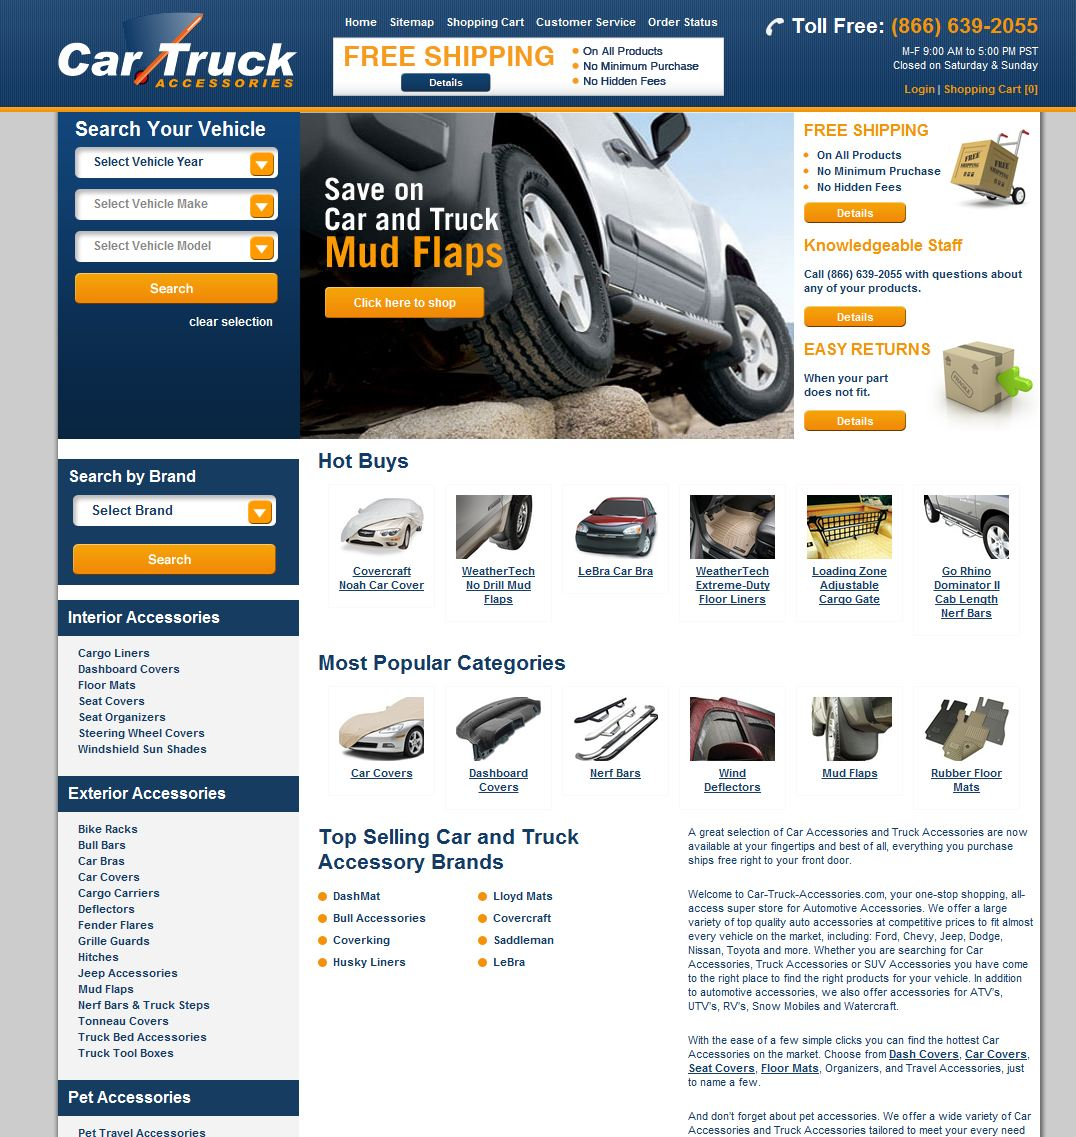 Car Truck Accessories, LLC Rated 5/5 stars by 1,958 Consumers ...